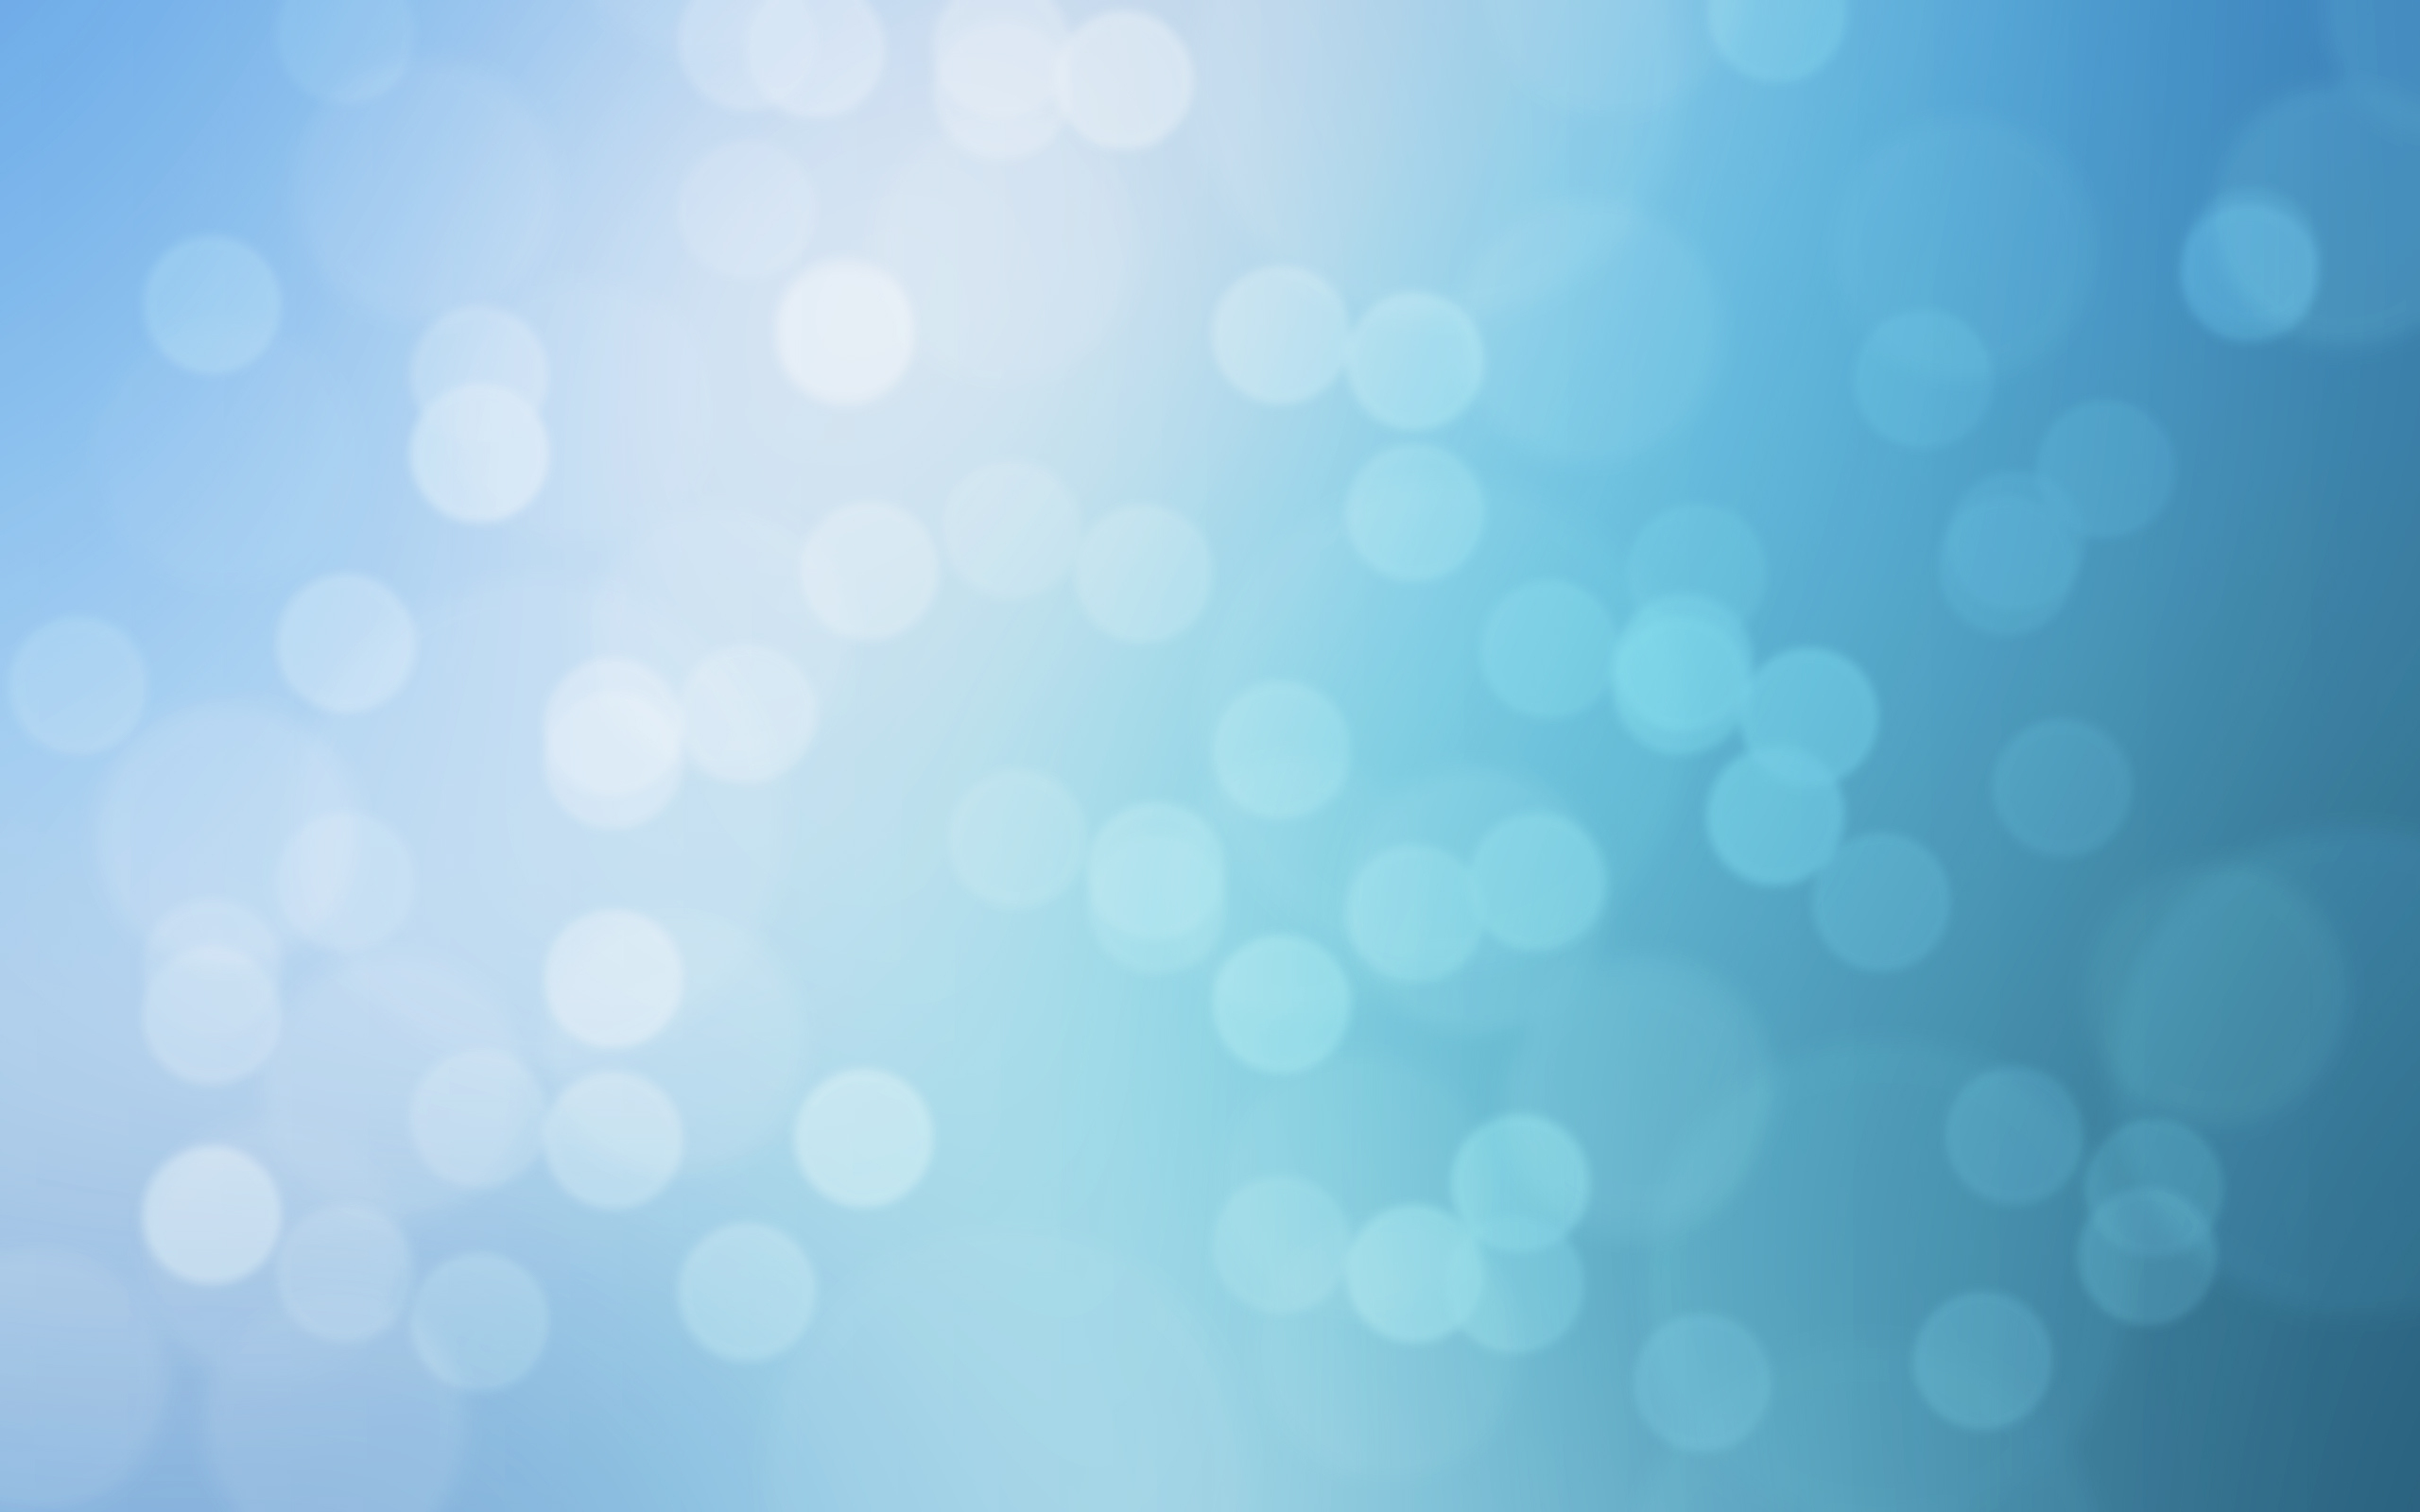 abstraction texture texture background bokeh blue bubbles 2560x1600